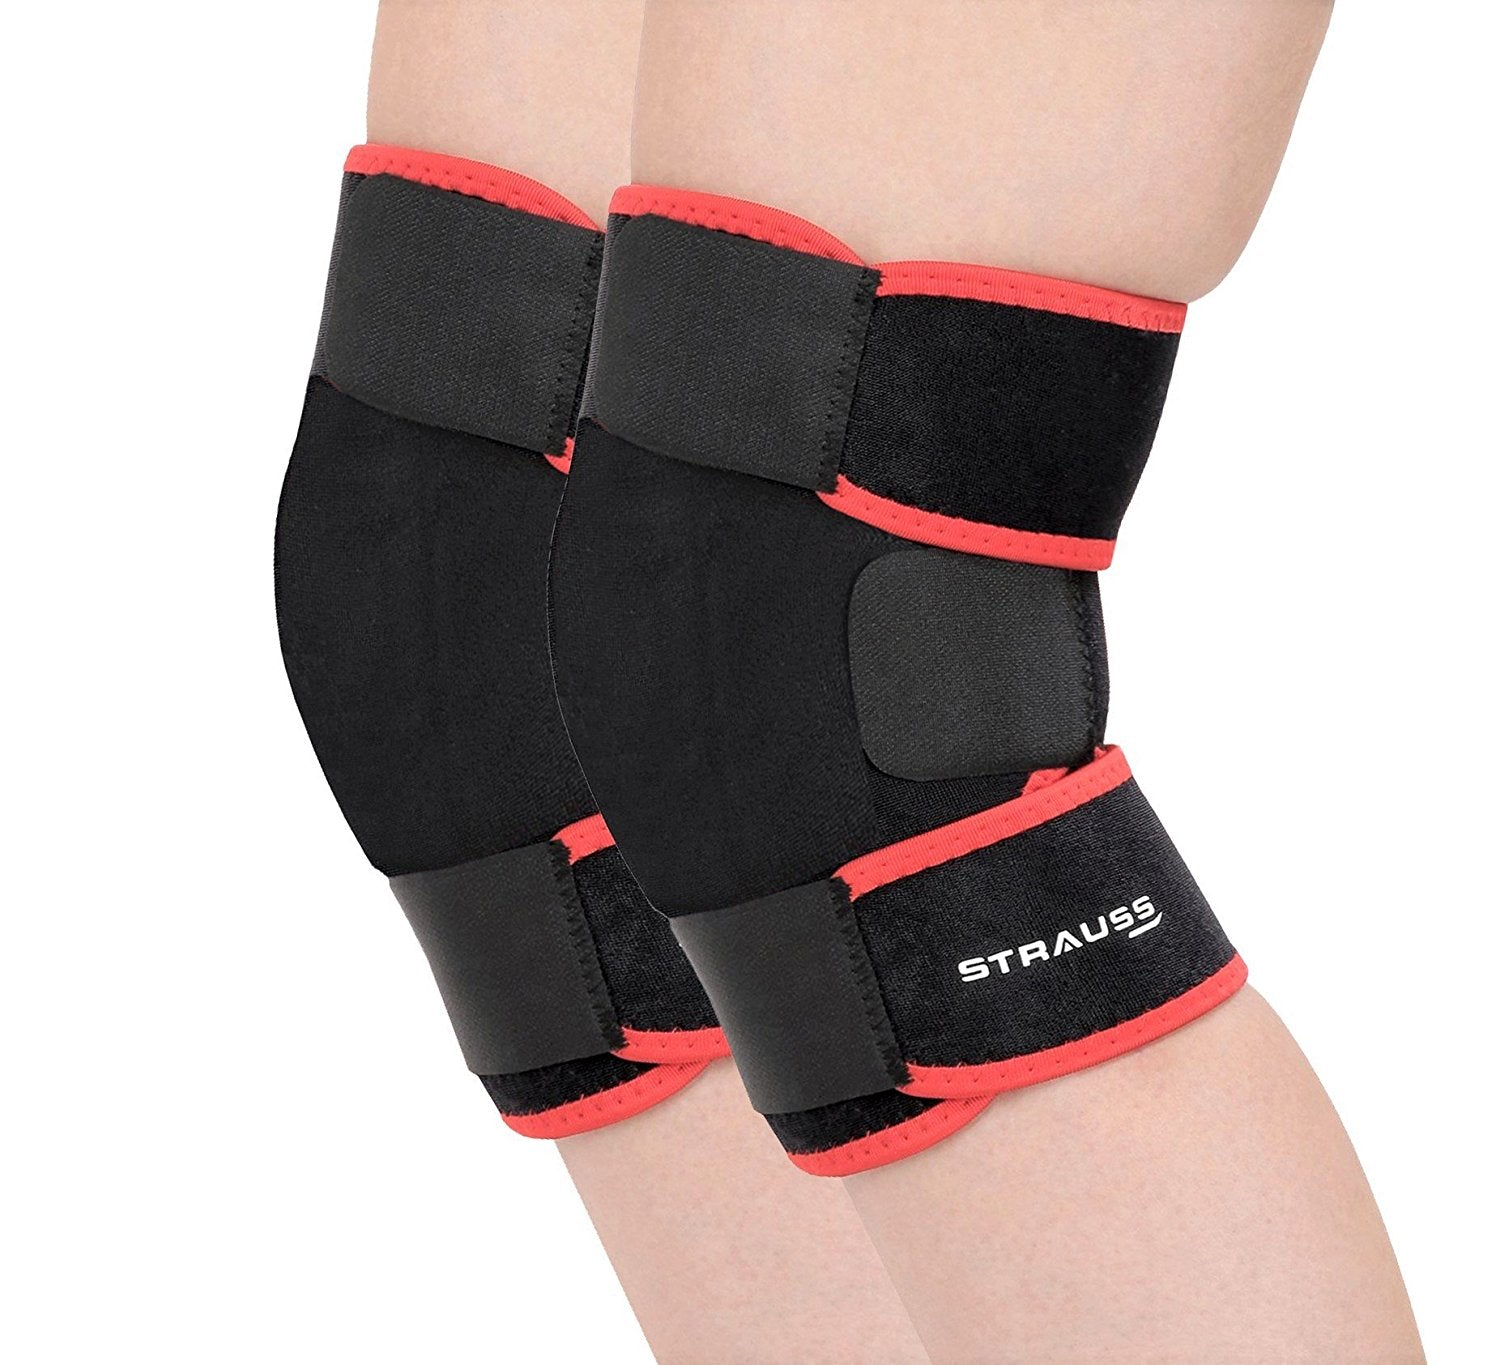 Strauss Adjustable Knee Support, Free Size, (Pair)